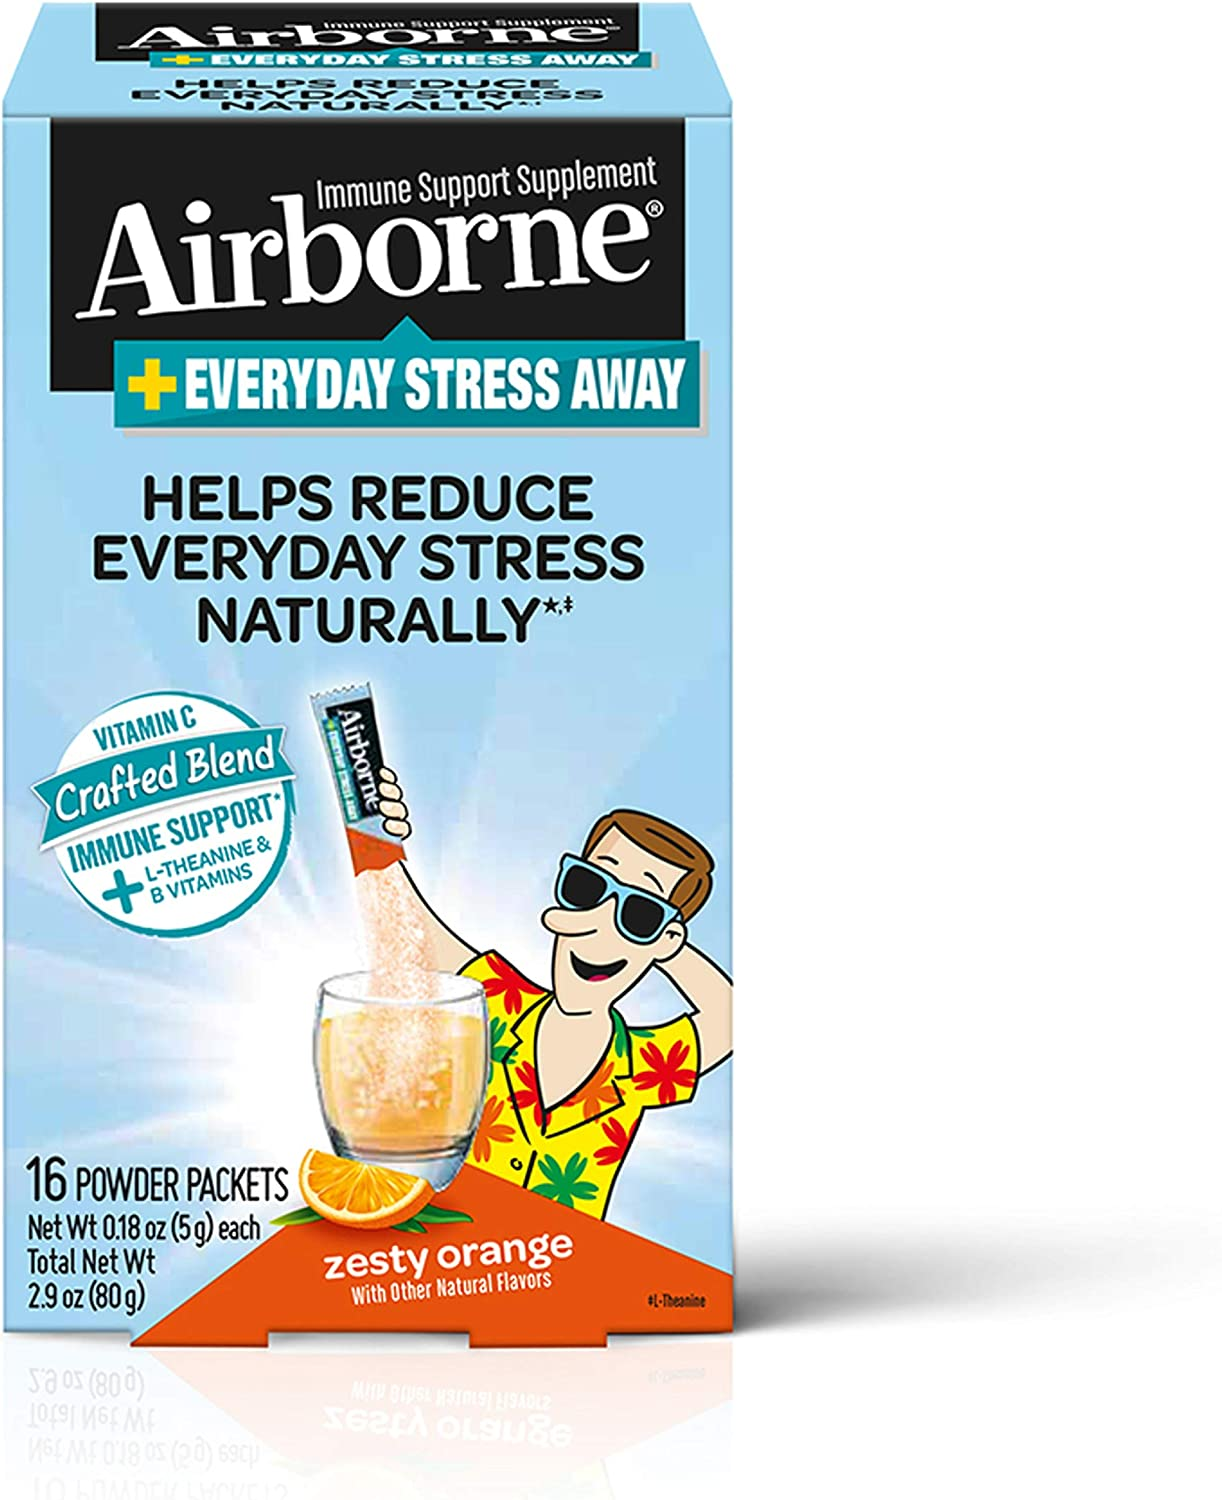 Airborne Stress Away Immune Support Supplement, Zesty Orange (16 Powder Packets) (Packaging May Vary)